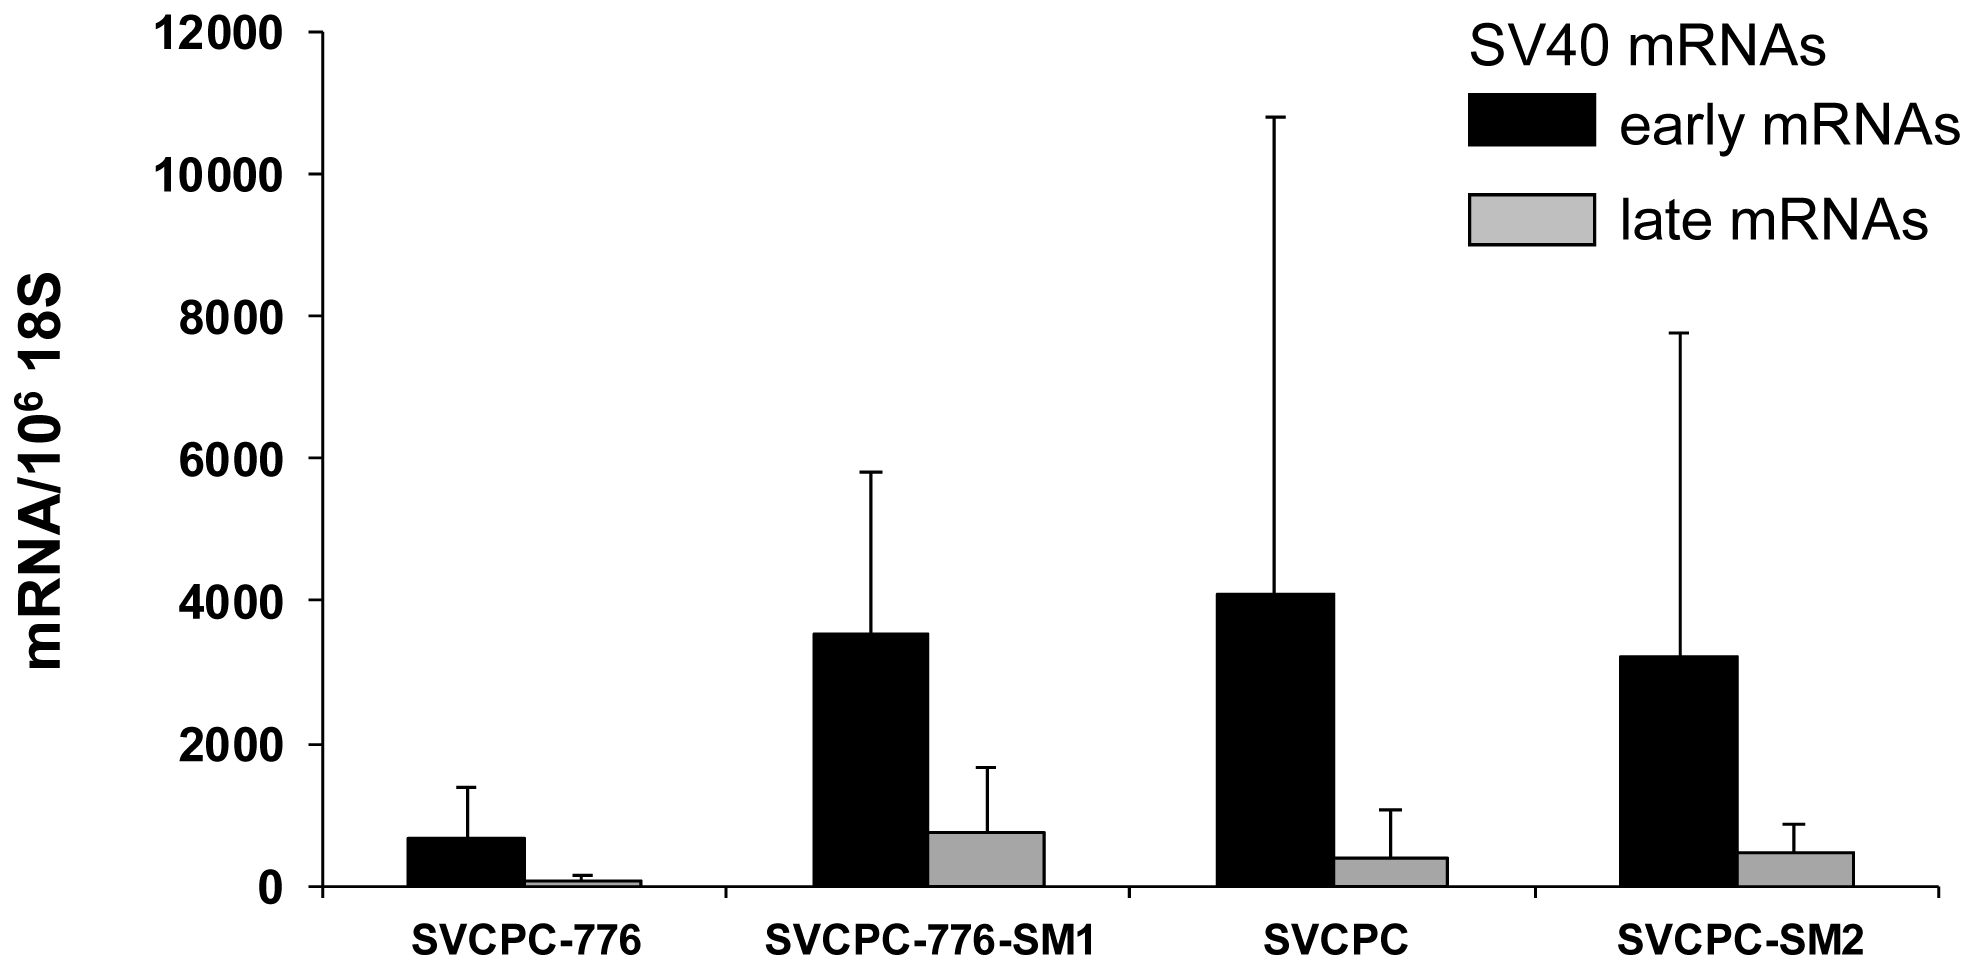 Detection of simian virus 40 (SV40) early and late mRNAs in hamster tumors induced by wild-type viruses and microRNA-negative mutants following intraperitoneal inoculation.